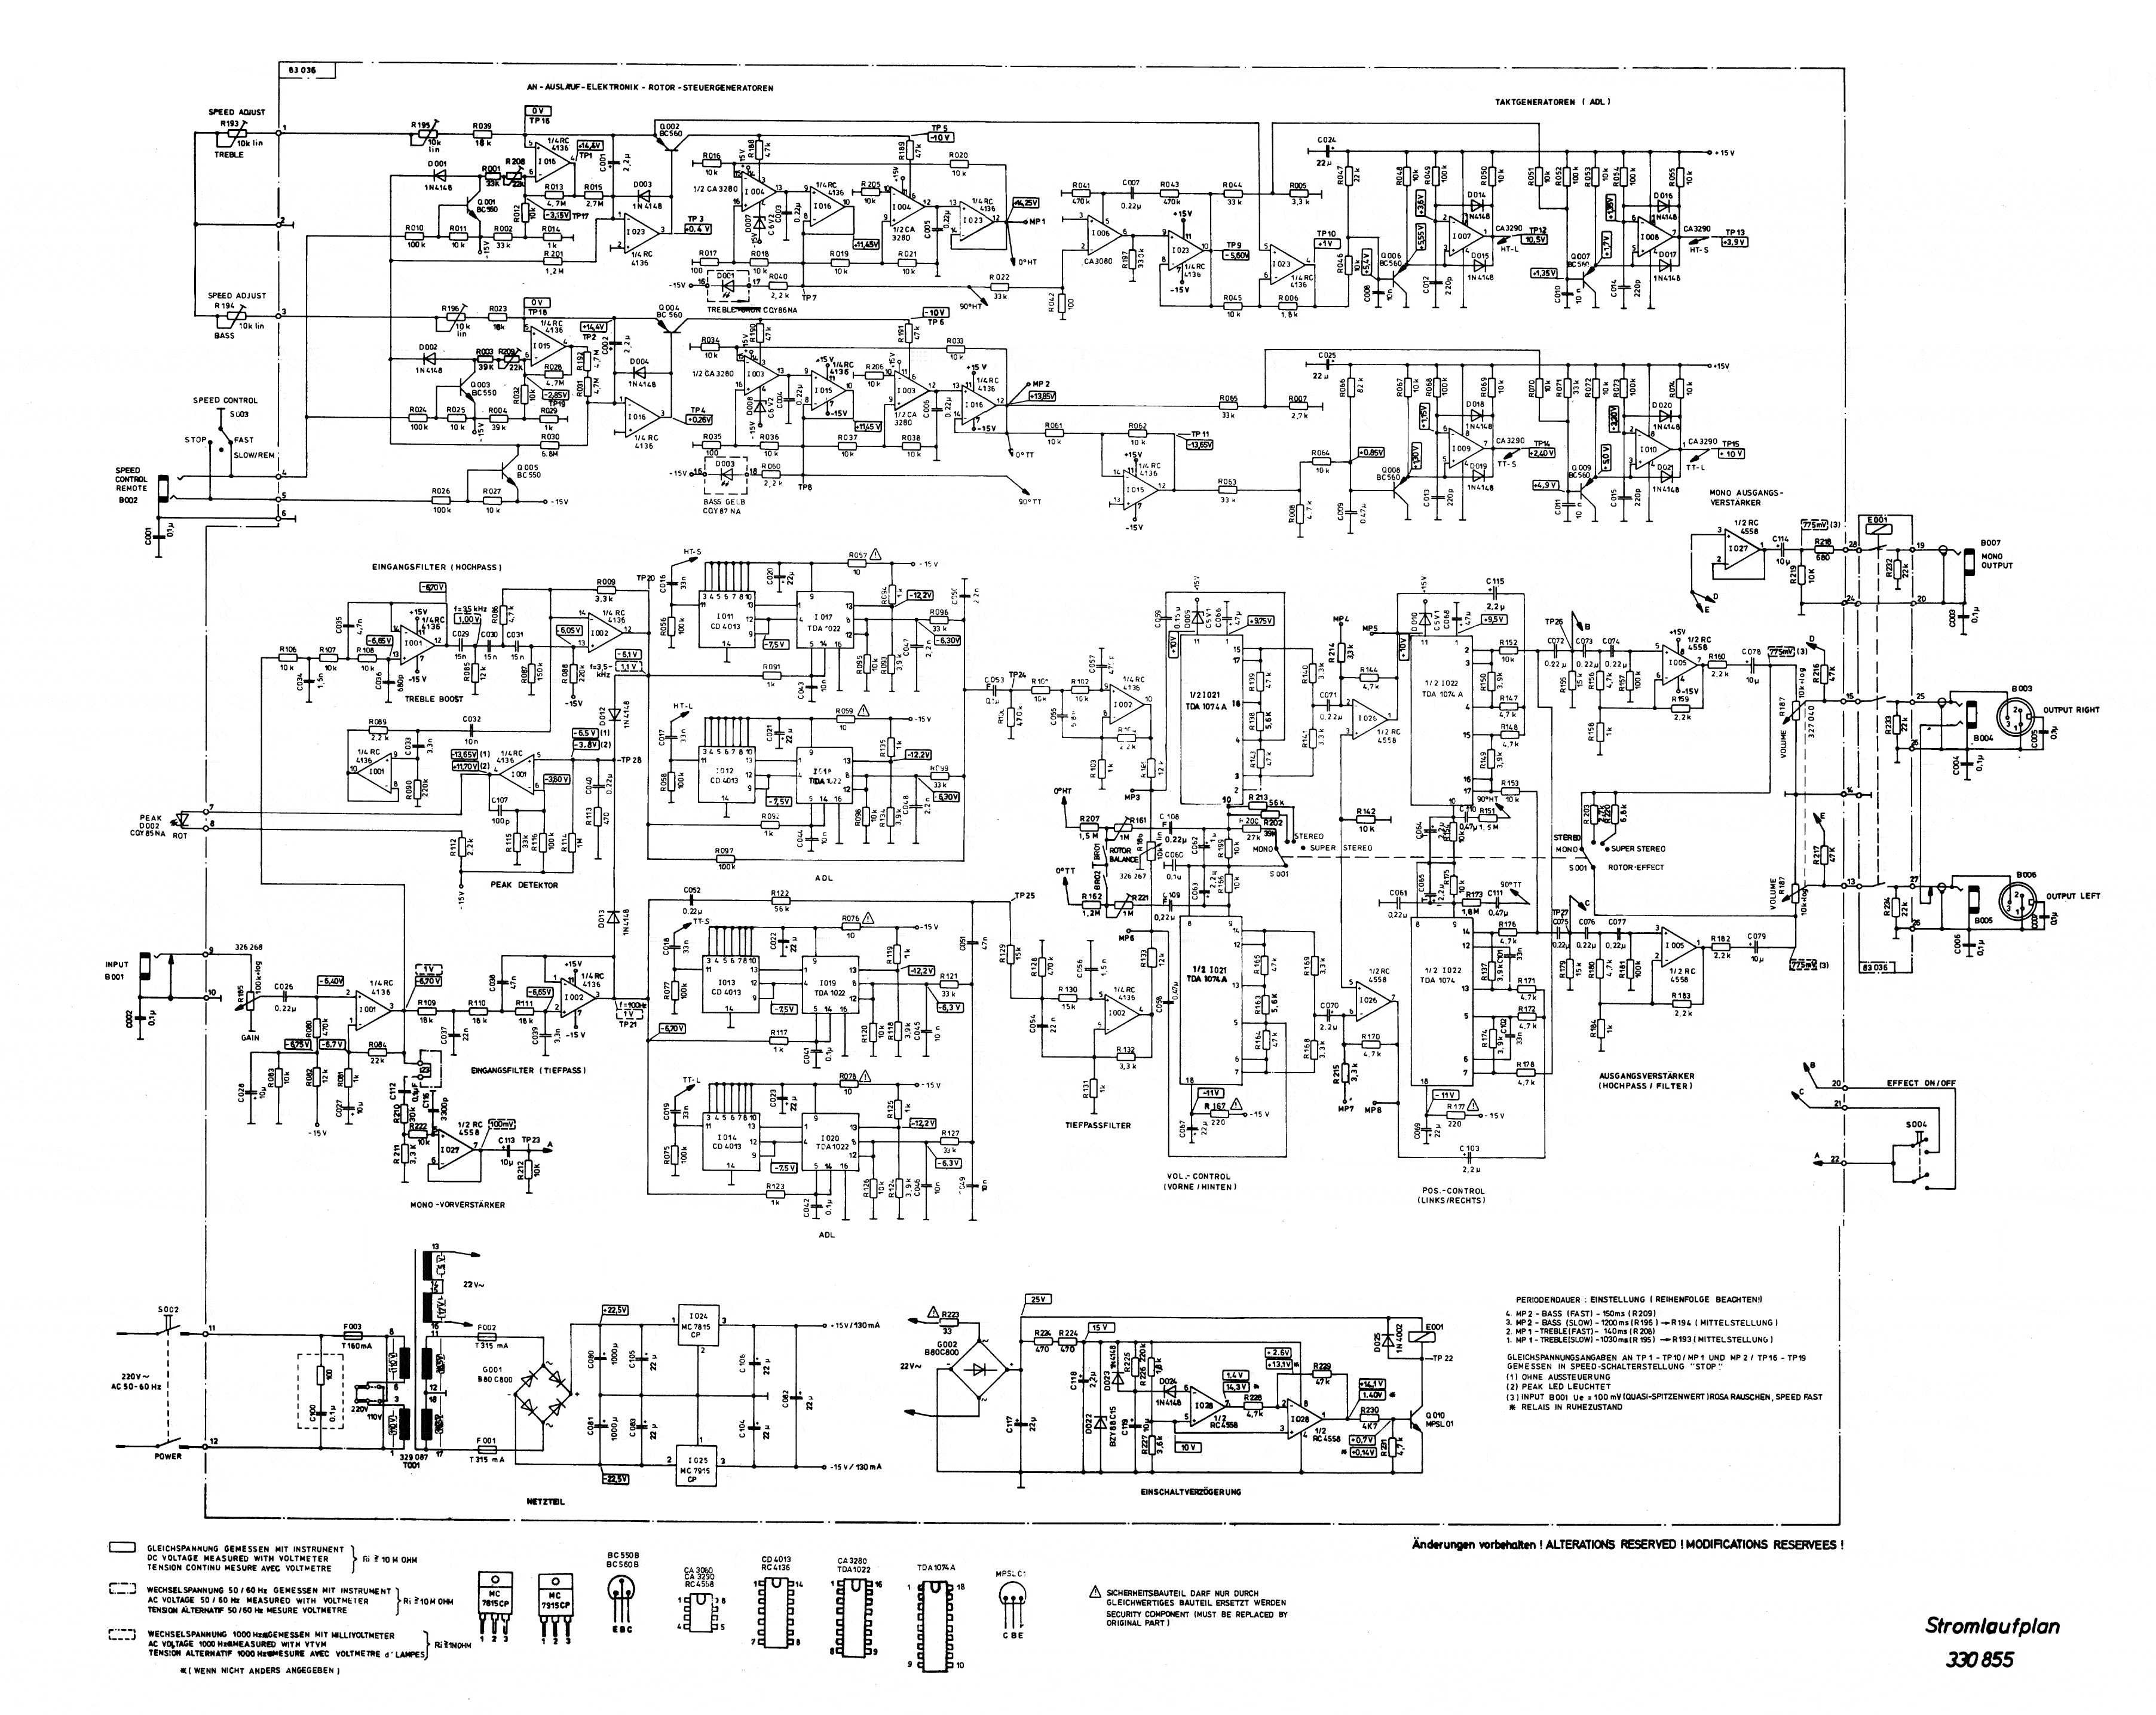 Synthesizer Service Manuals Free Download 1985 Honda Cr80 Wiring Diagram Cls 222 Schematics Drs 78 Manual